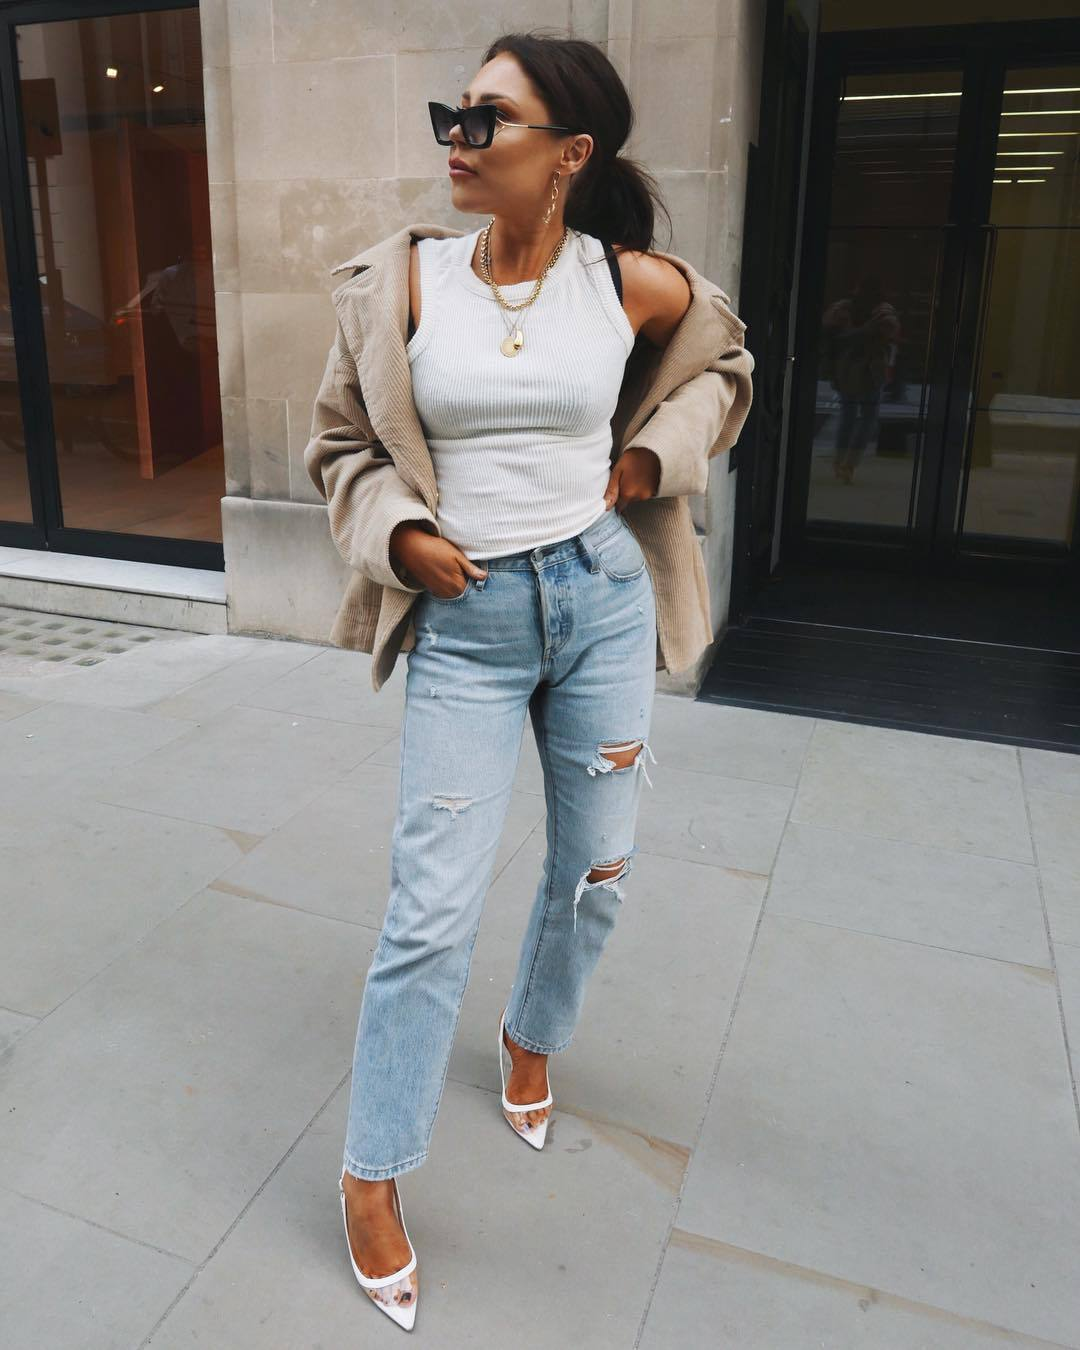 shoes pumps ripped jeans high waisted jeans straight jeans white top tank top jacket